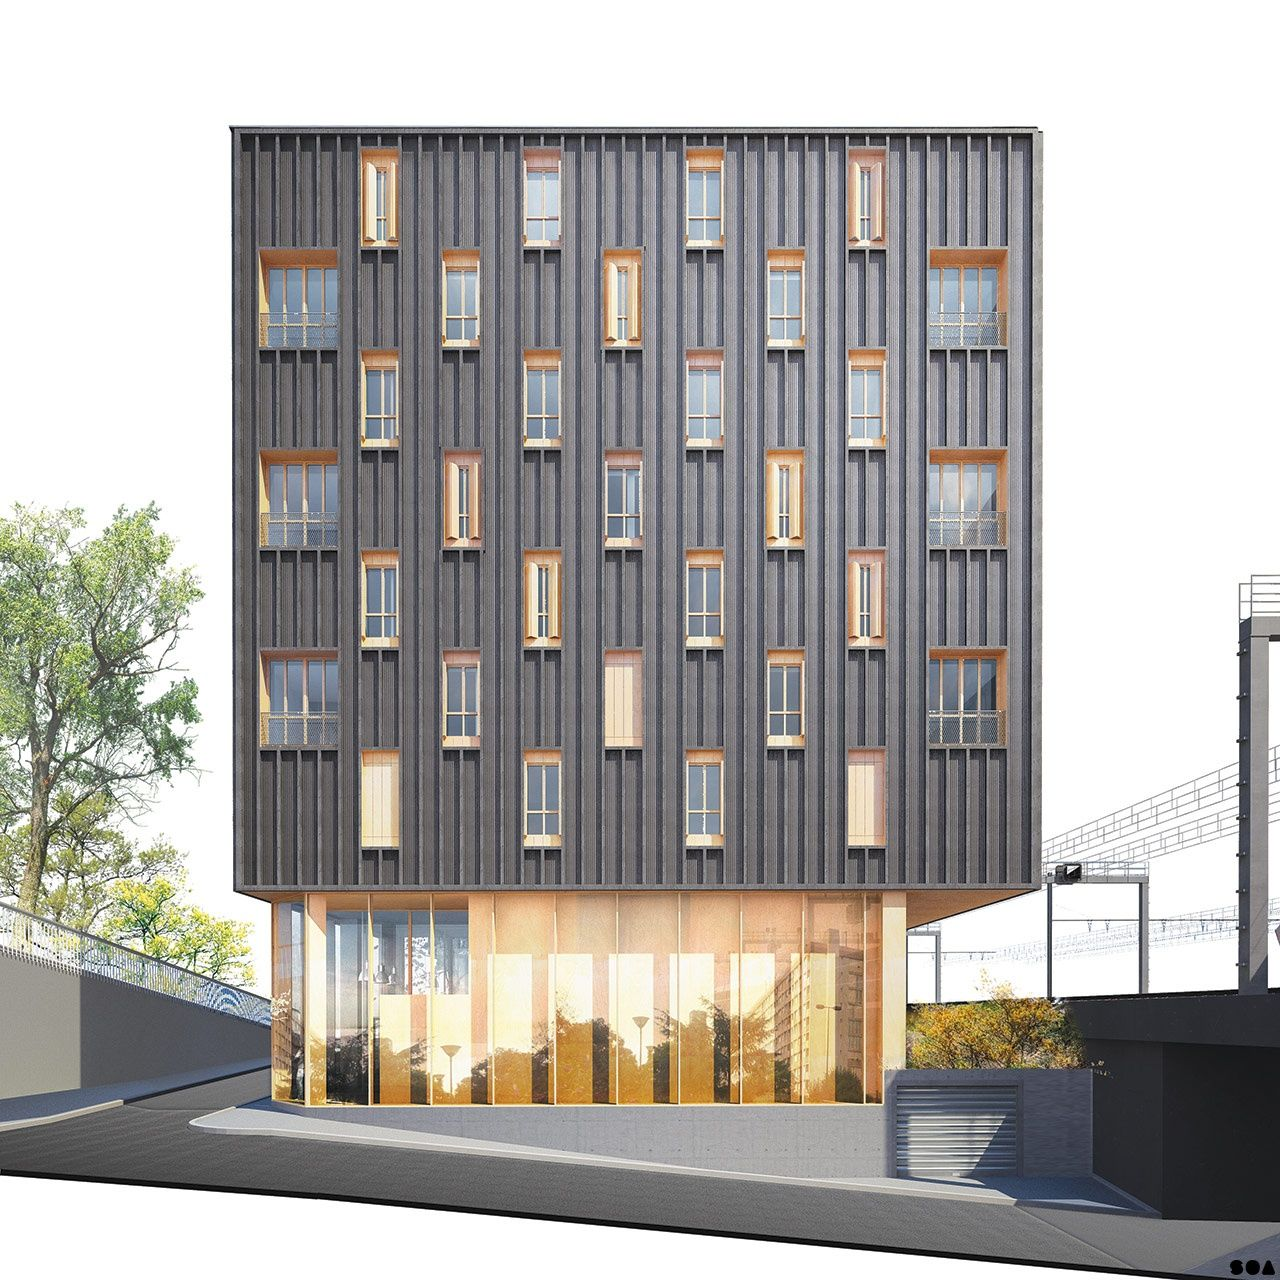 Soa architectes paris projets logements gergovie s6 for Architecture contemporaine paris